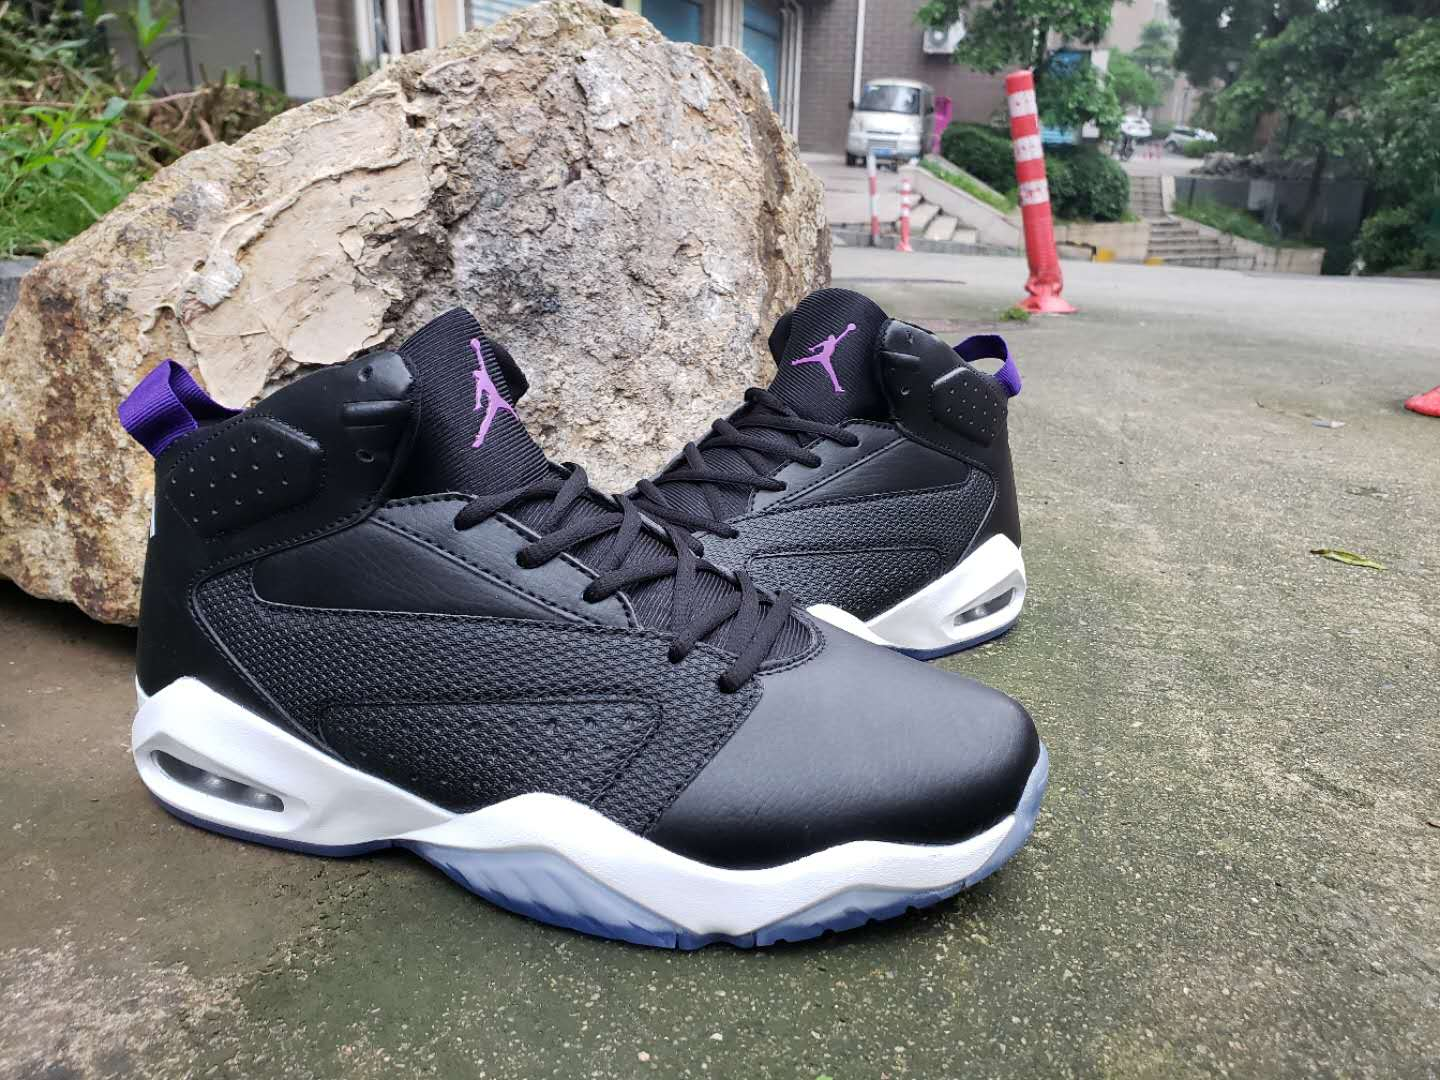 Air Jordan Lift Off AJ6 Black White Puprle Shoes